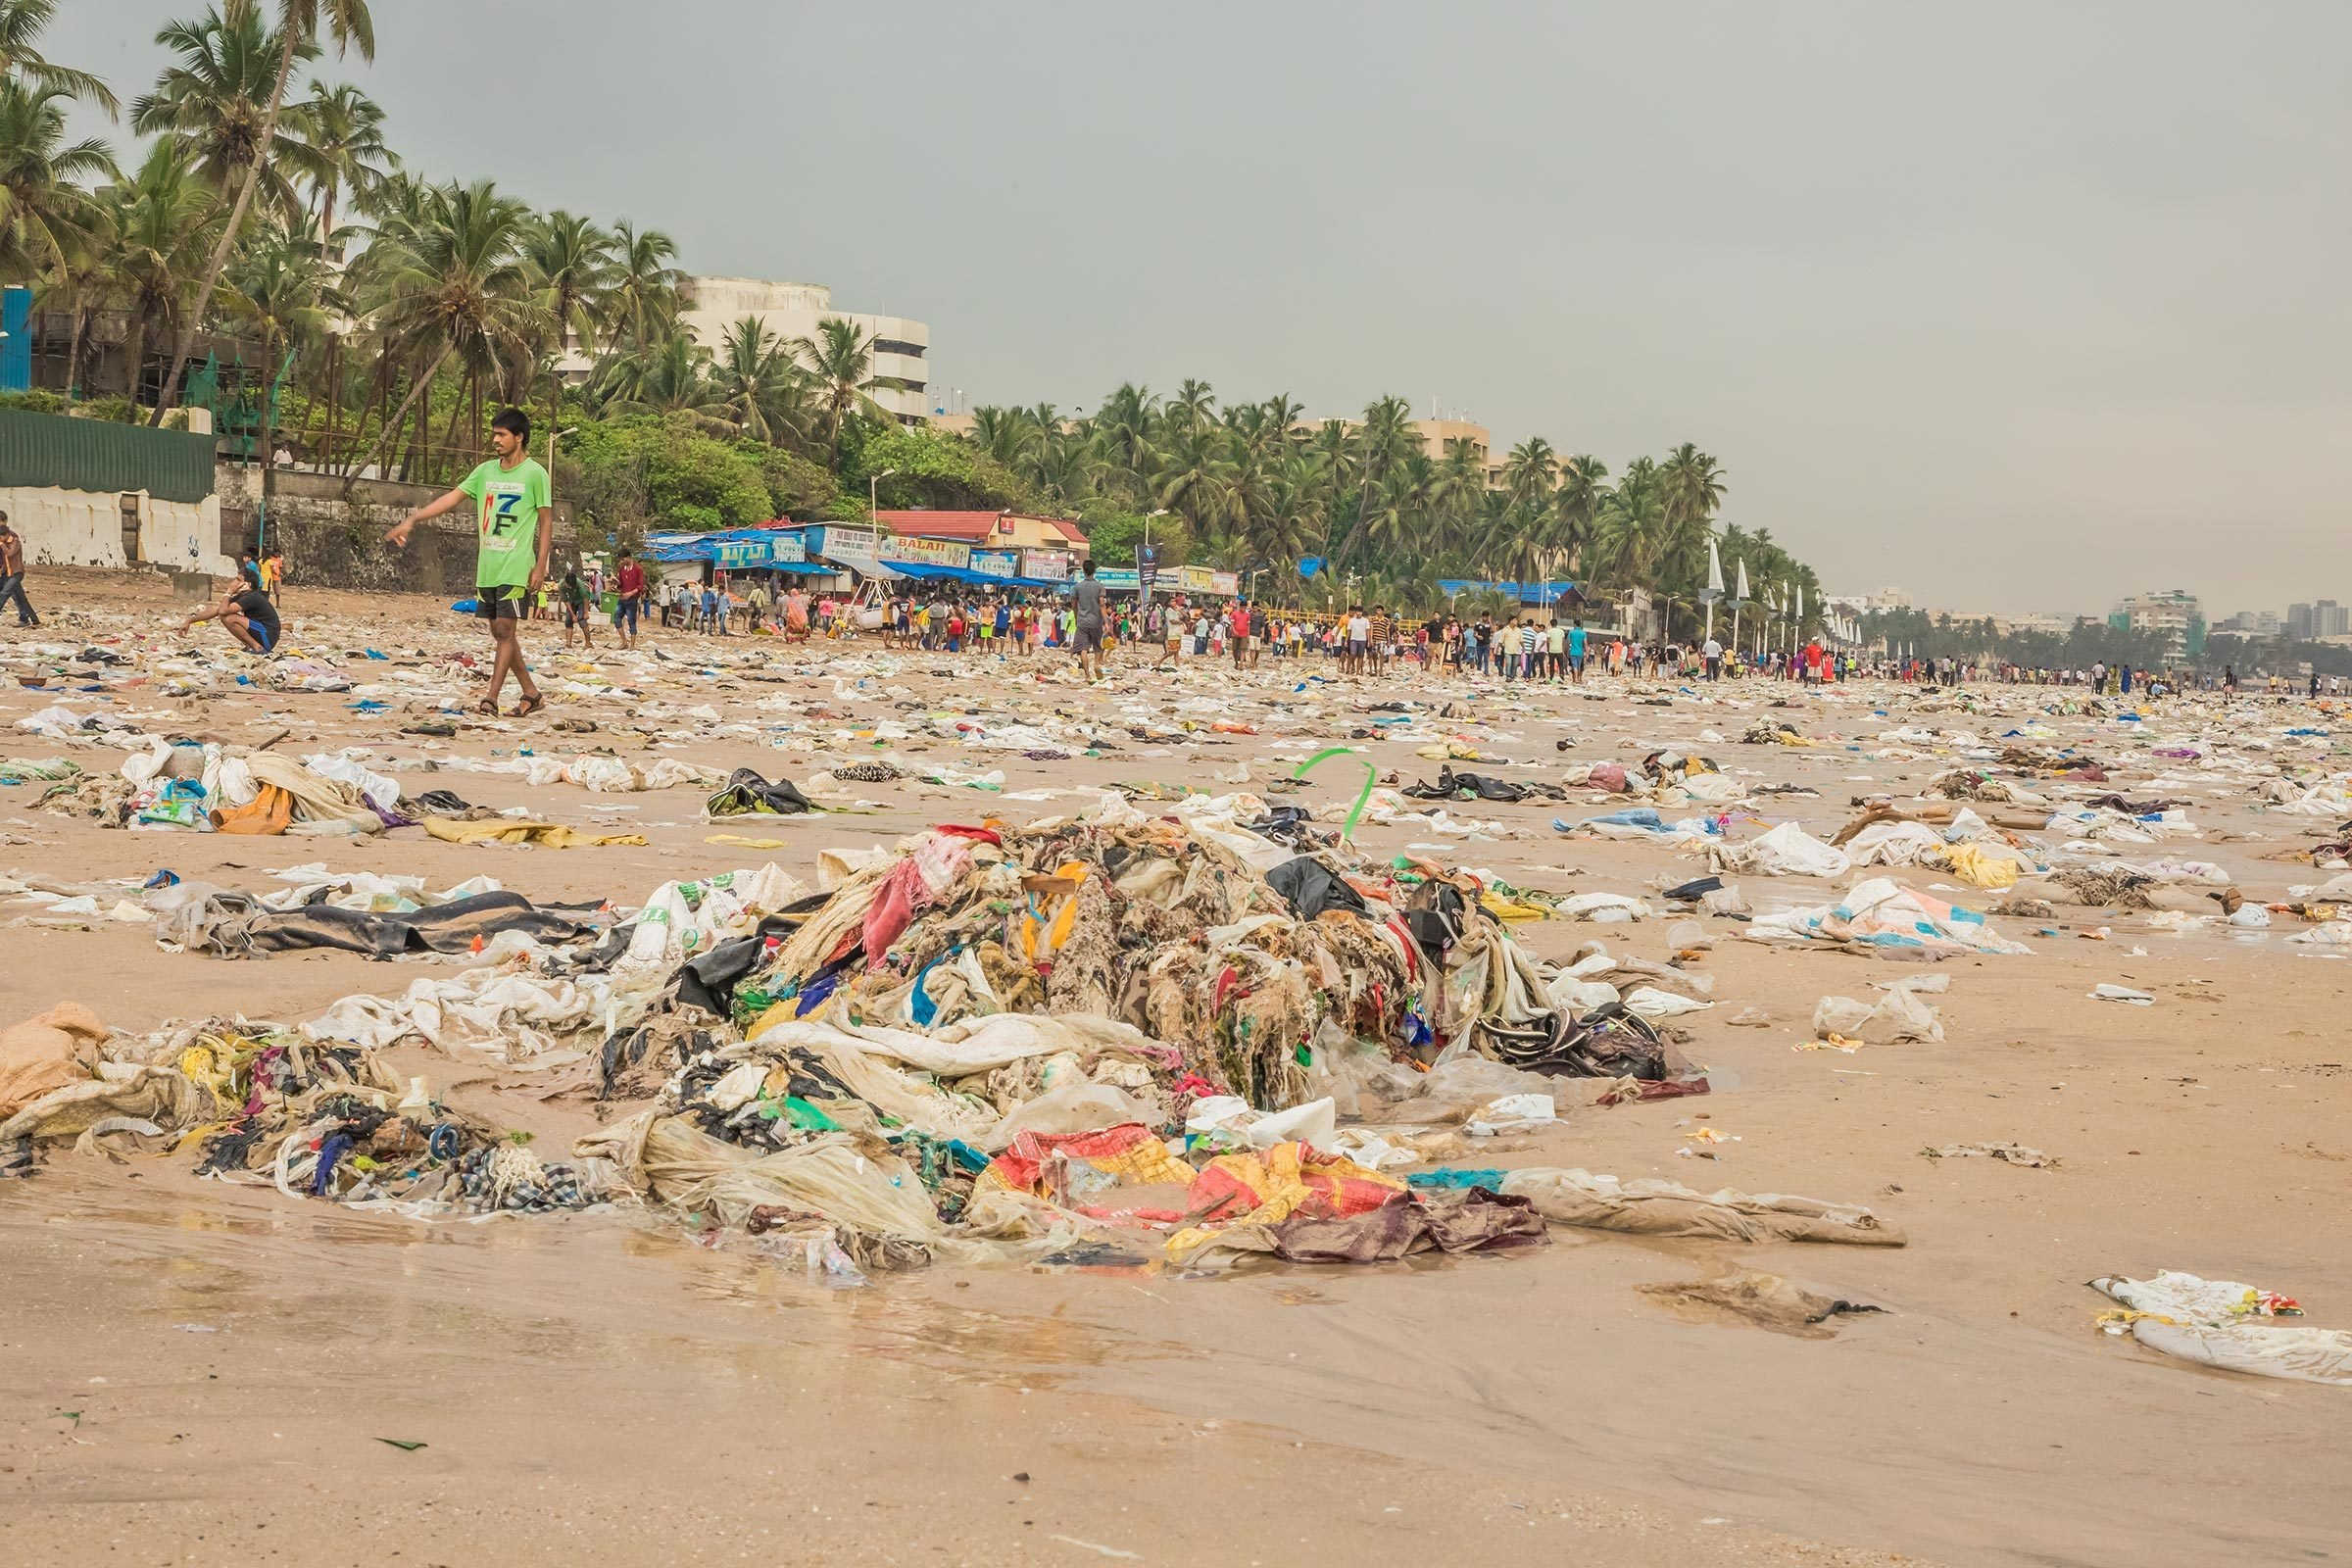 MUMBAI, INDIA - JUNE 25, 2017: The Juhu Beach in Mumbai which is filled with garbage and waste and is heavily poluted